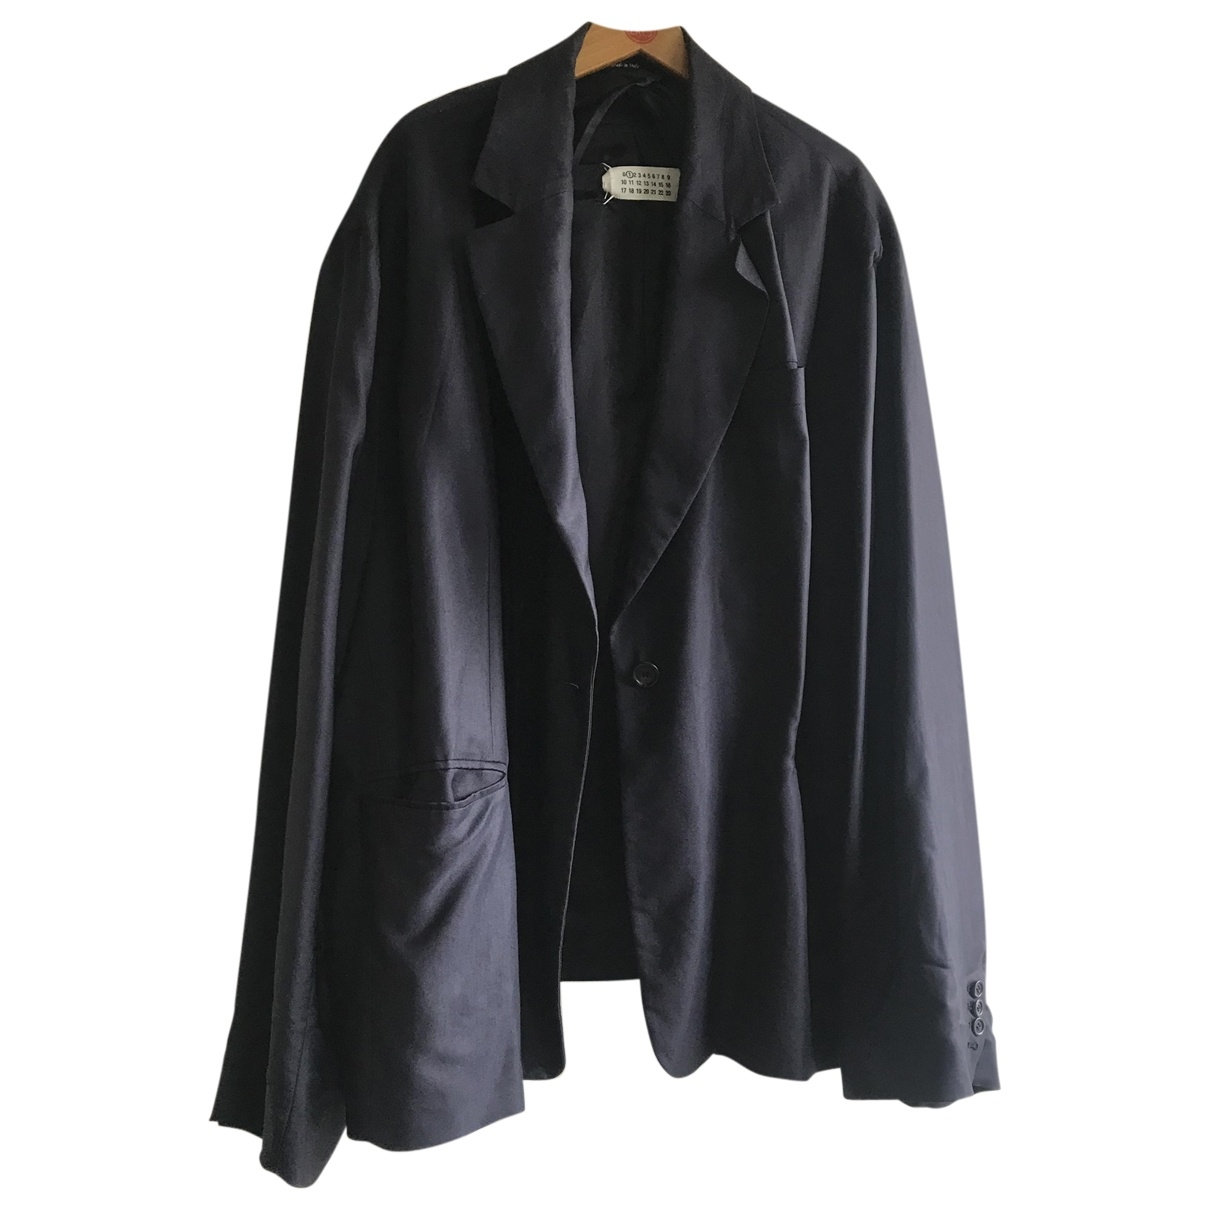 Maison Martin Margiela \N Navy jacket for Women XS International